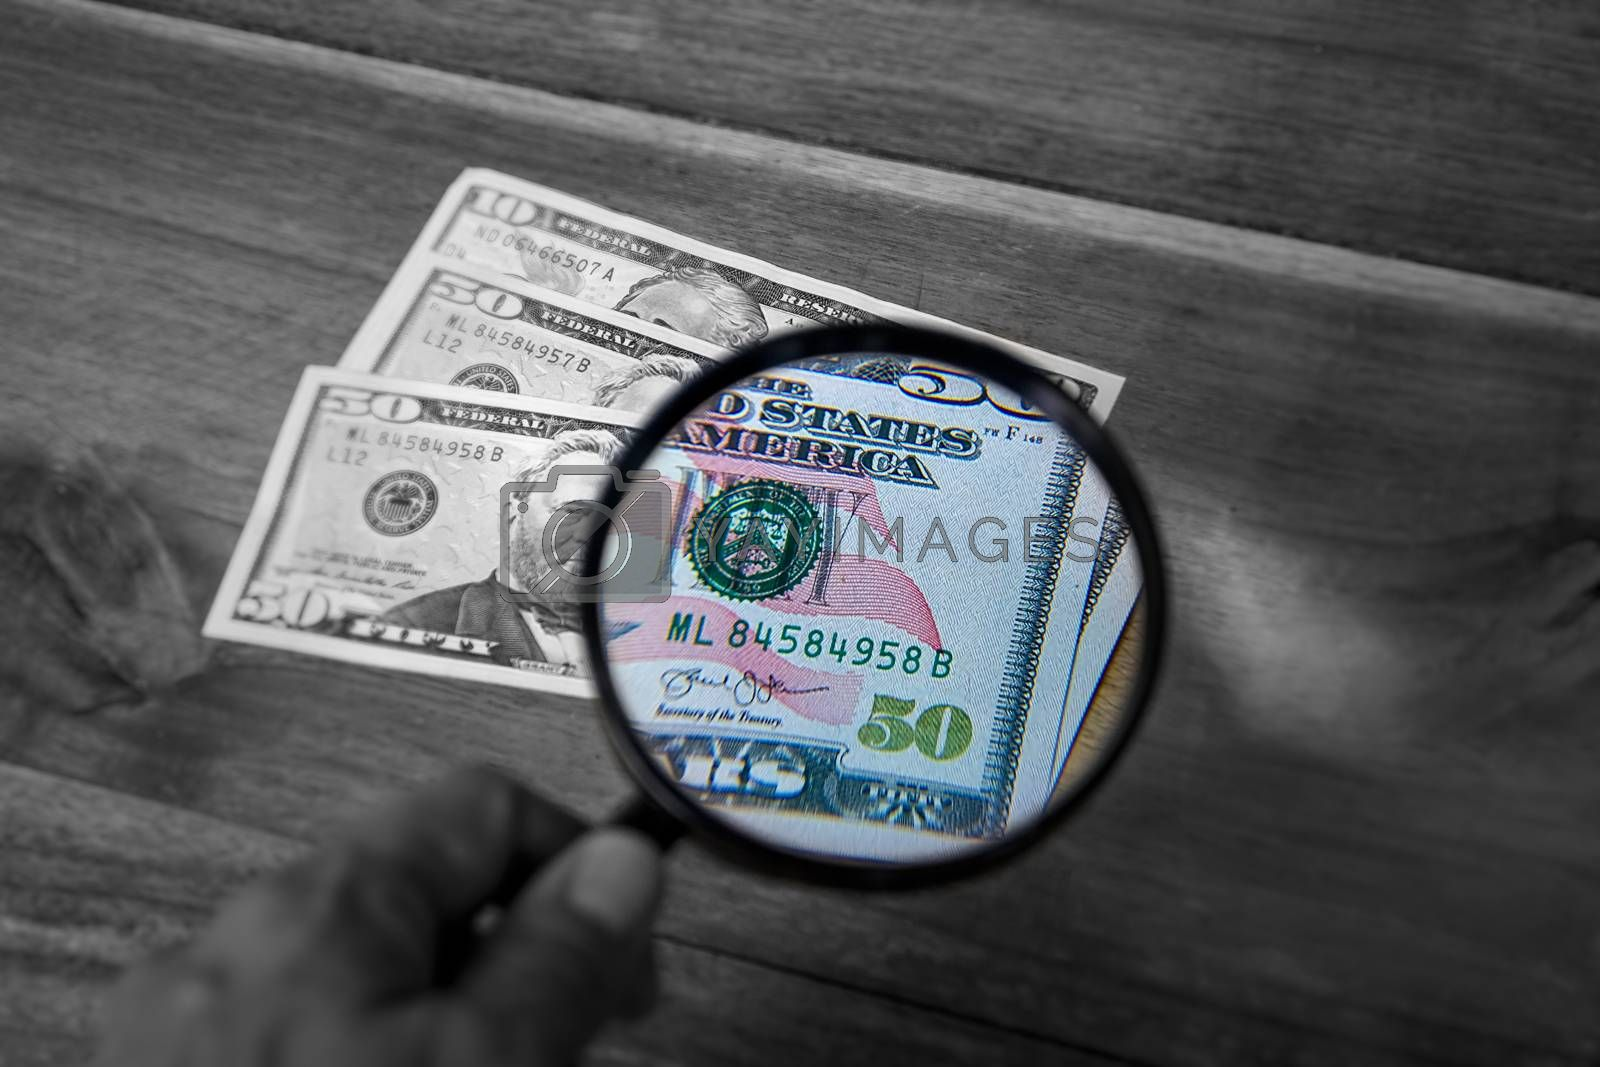 Partial view of a dollar through a magnifying glass. The part of the enlarged image is in color and the rest in black and white